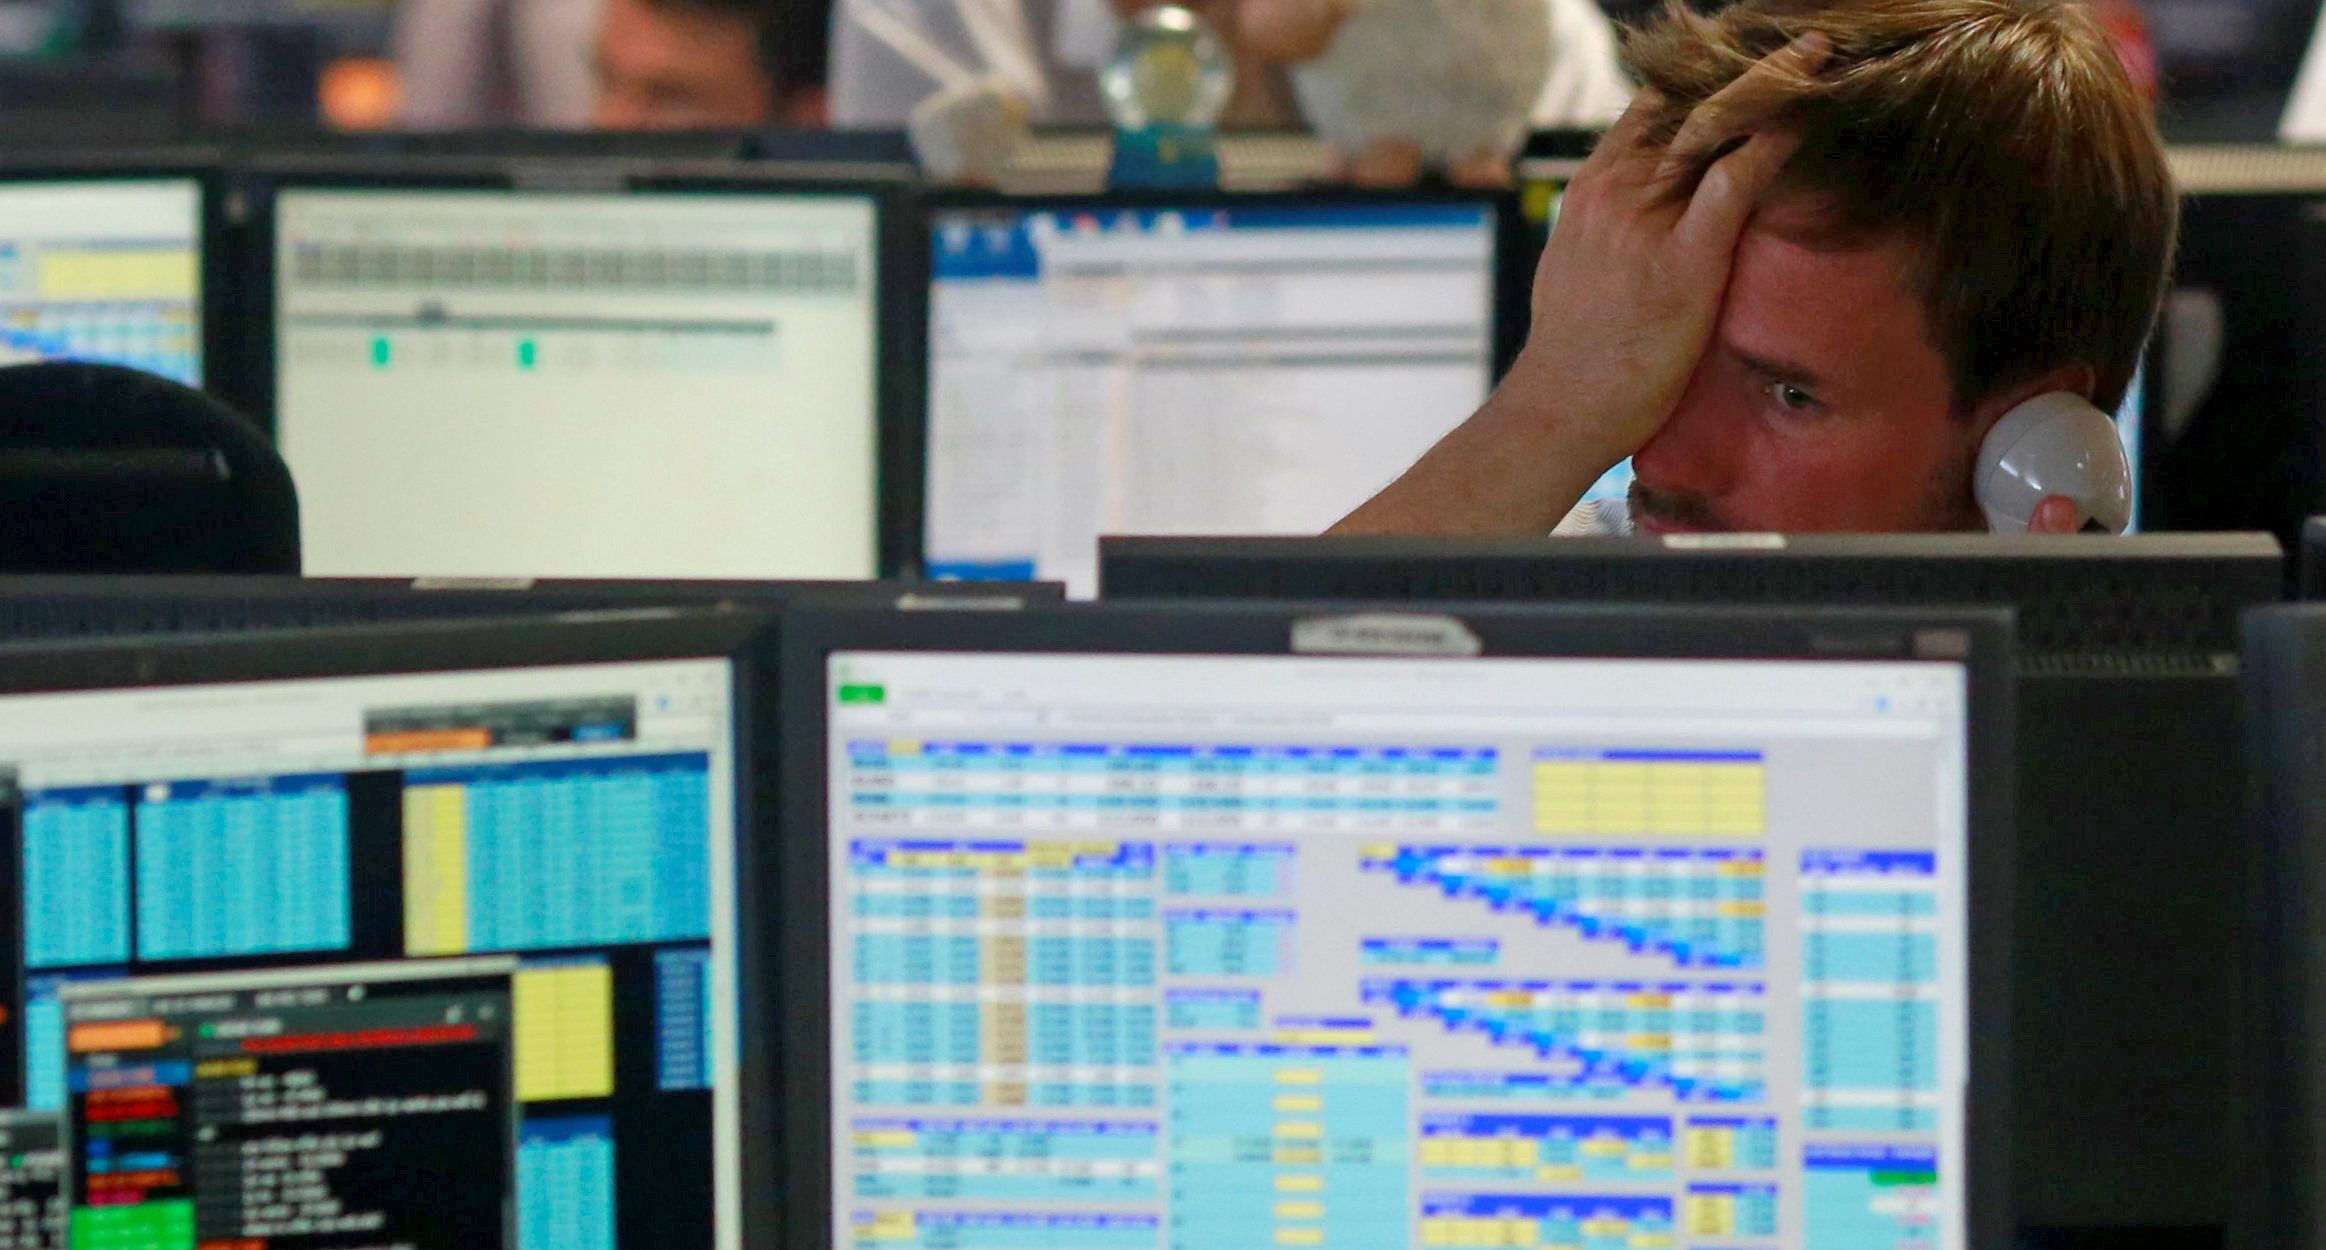 A trader from BGC, a global brokerage in London, reacts to the opening of European markets.